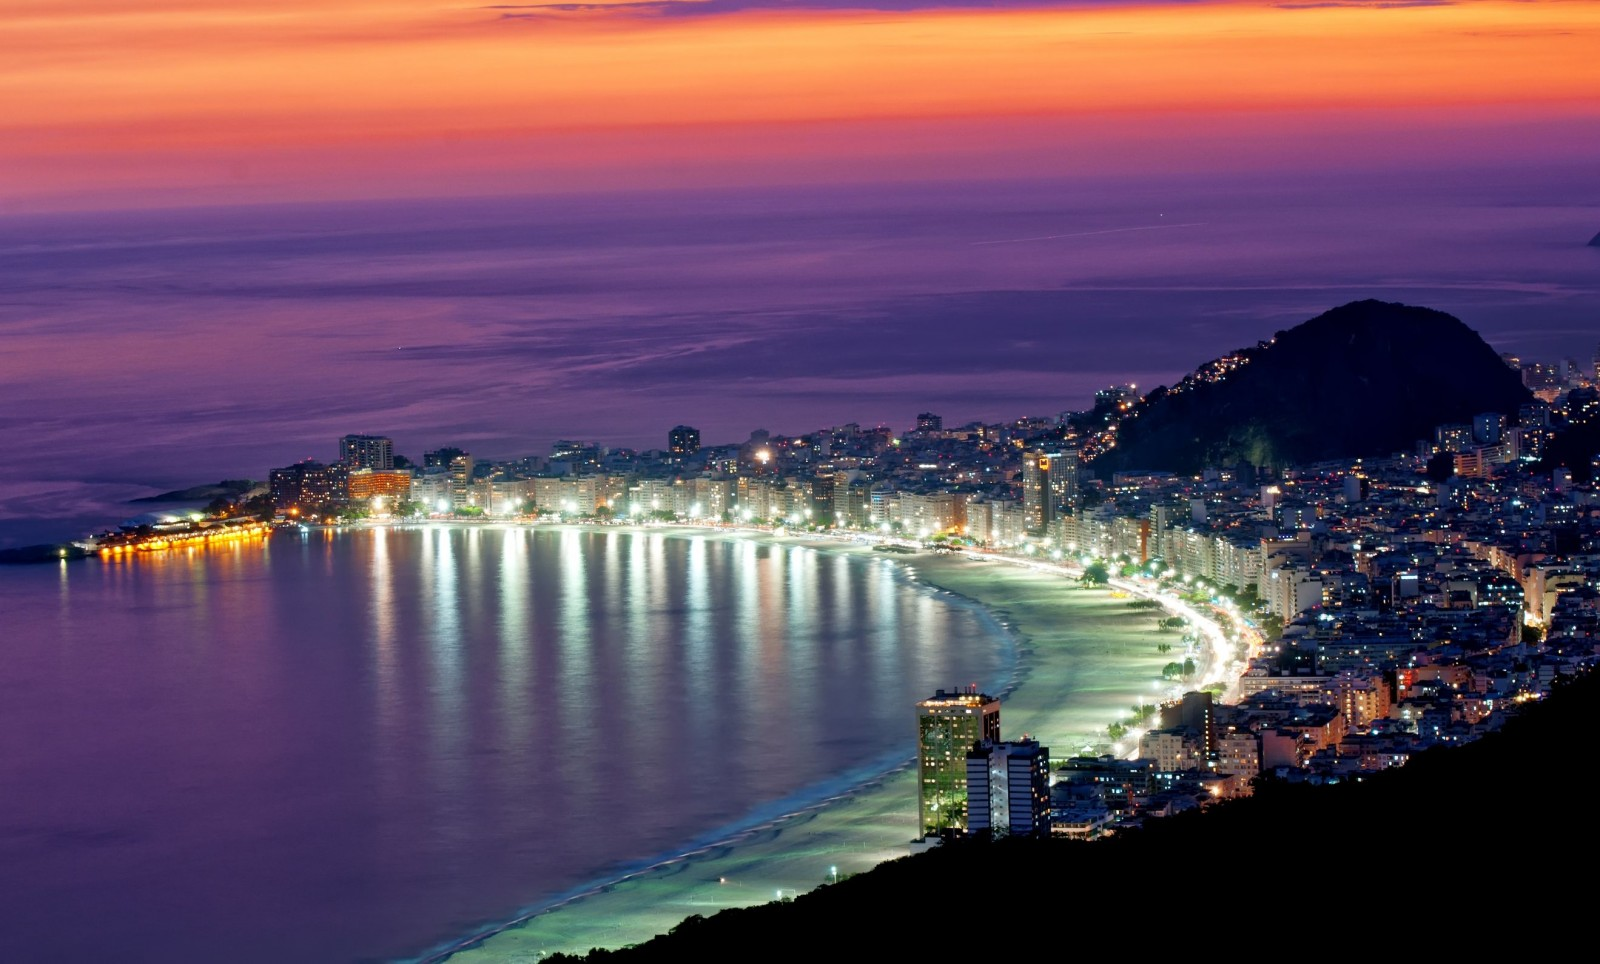 Copacabana Is Perhaps The World S Most Famous Beach With Iconic View Of Sugar Loaf Mountain And Wide Expanse 2 Miles 4km White Sand